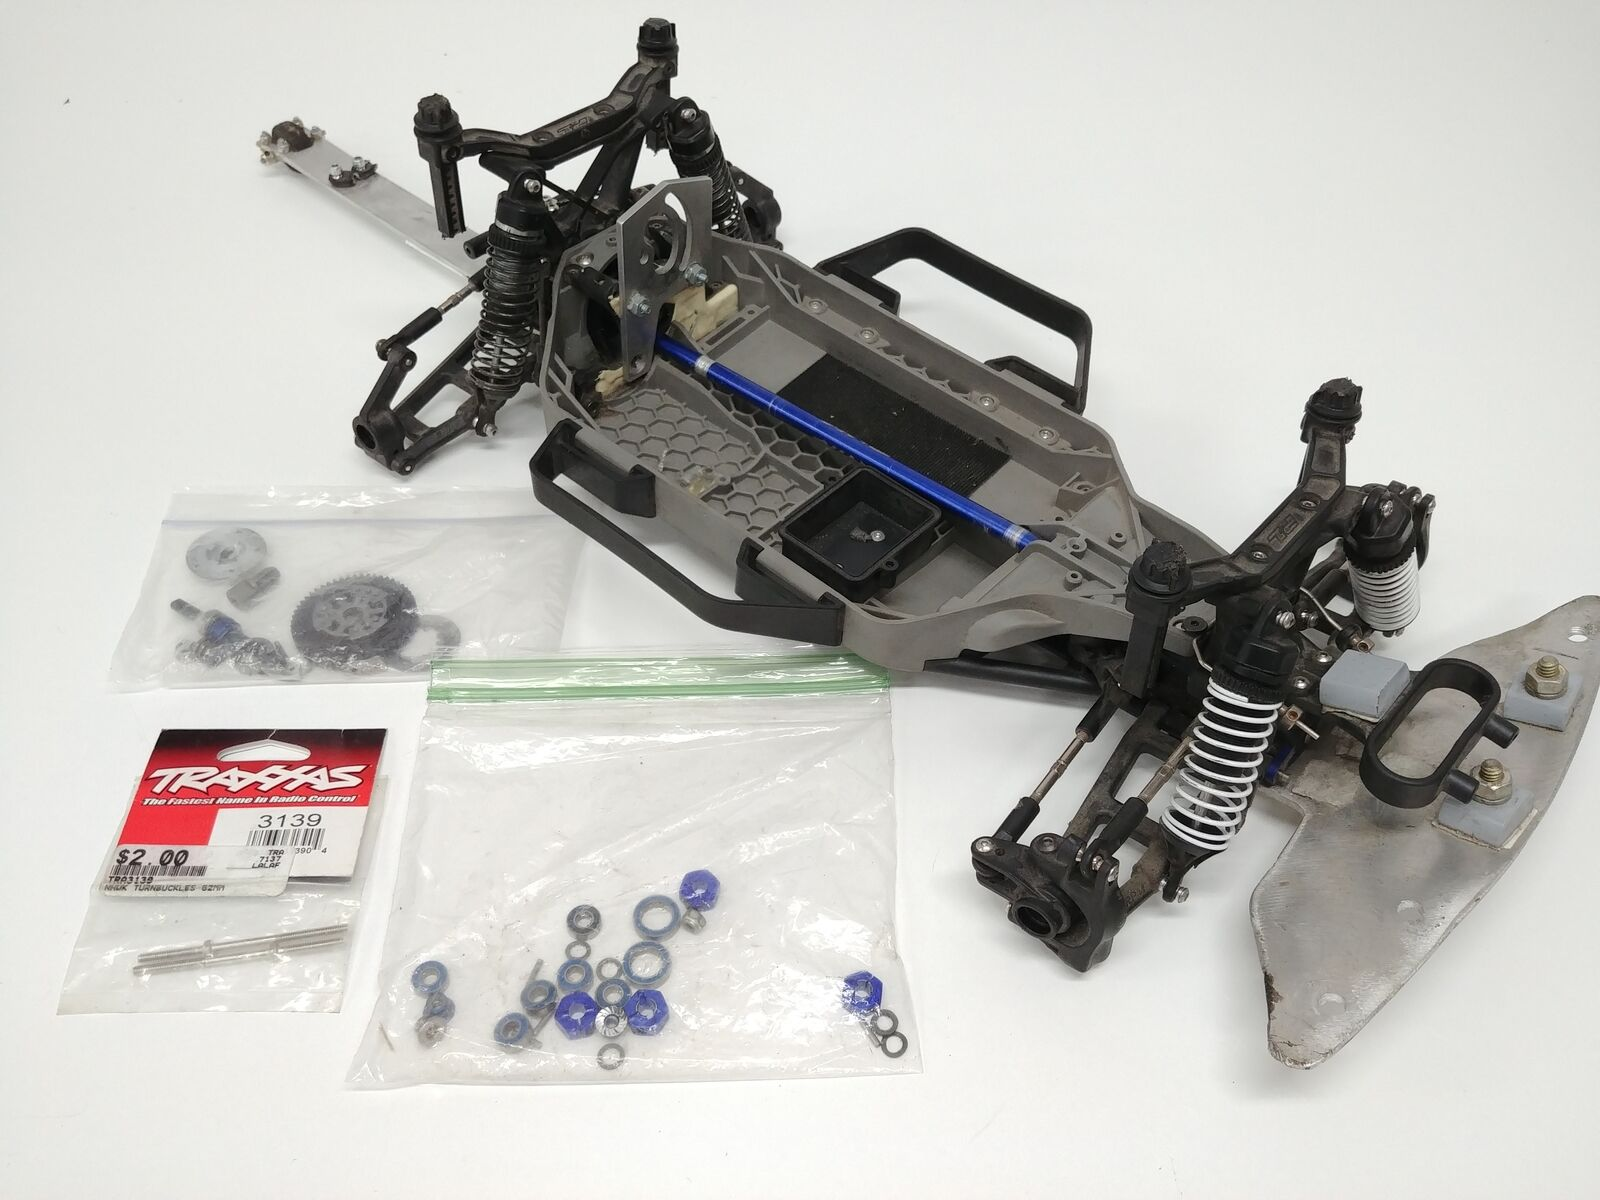 Traxxas 1/10 Slash / RALLY 4x4 LCG Roller/Slider Chassis UPGRADED Aluminum